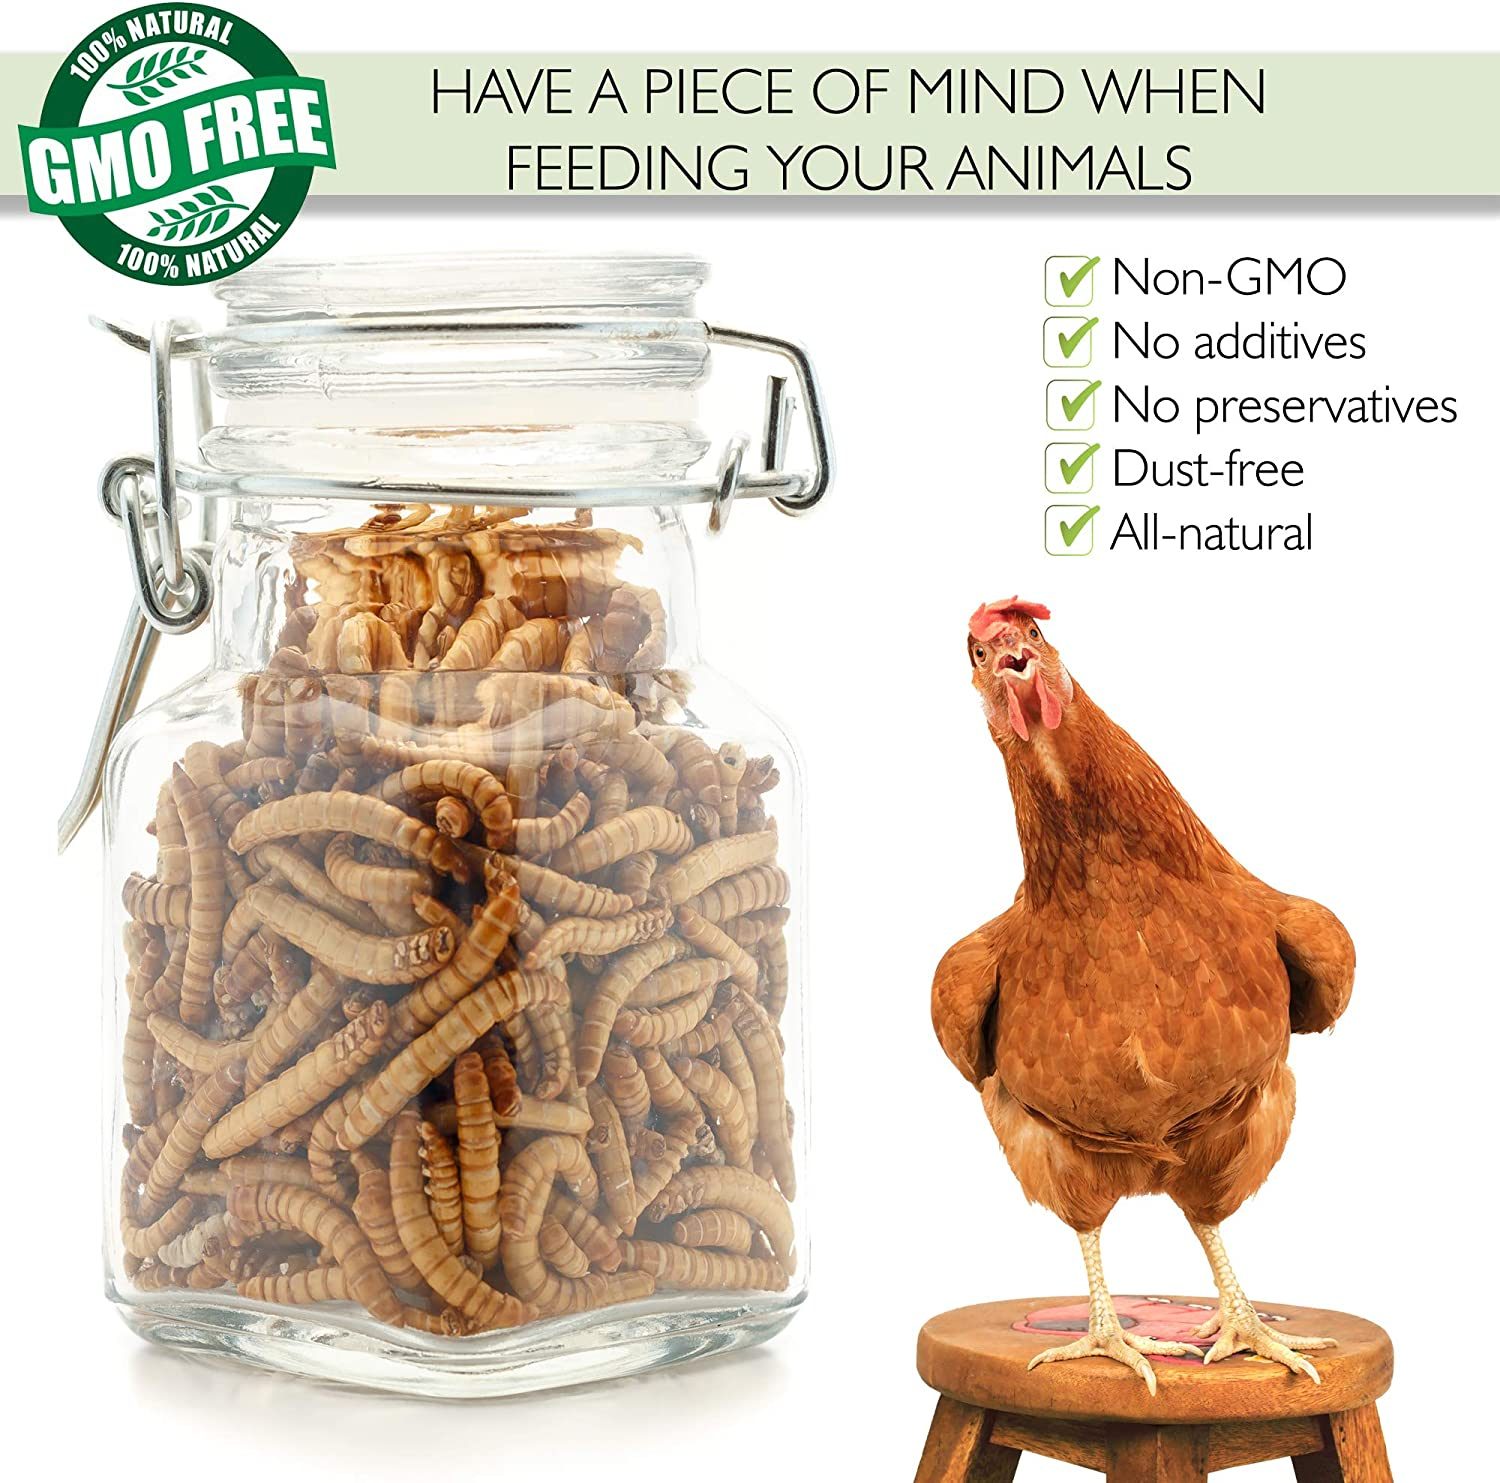 PICKY NEB 100% Non-GMO Dried Mealworms - High-Protein Mealworm Treats - Perfect for Your Chickens, Ducks, Wild Birds, Turtles, Hamsters, Fish, and Hedgehogs